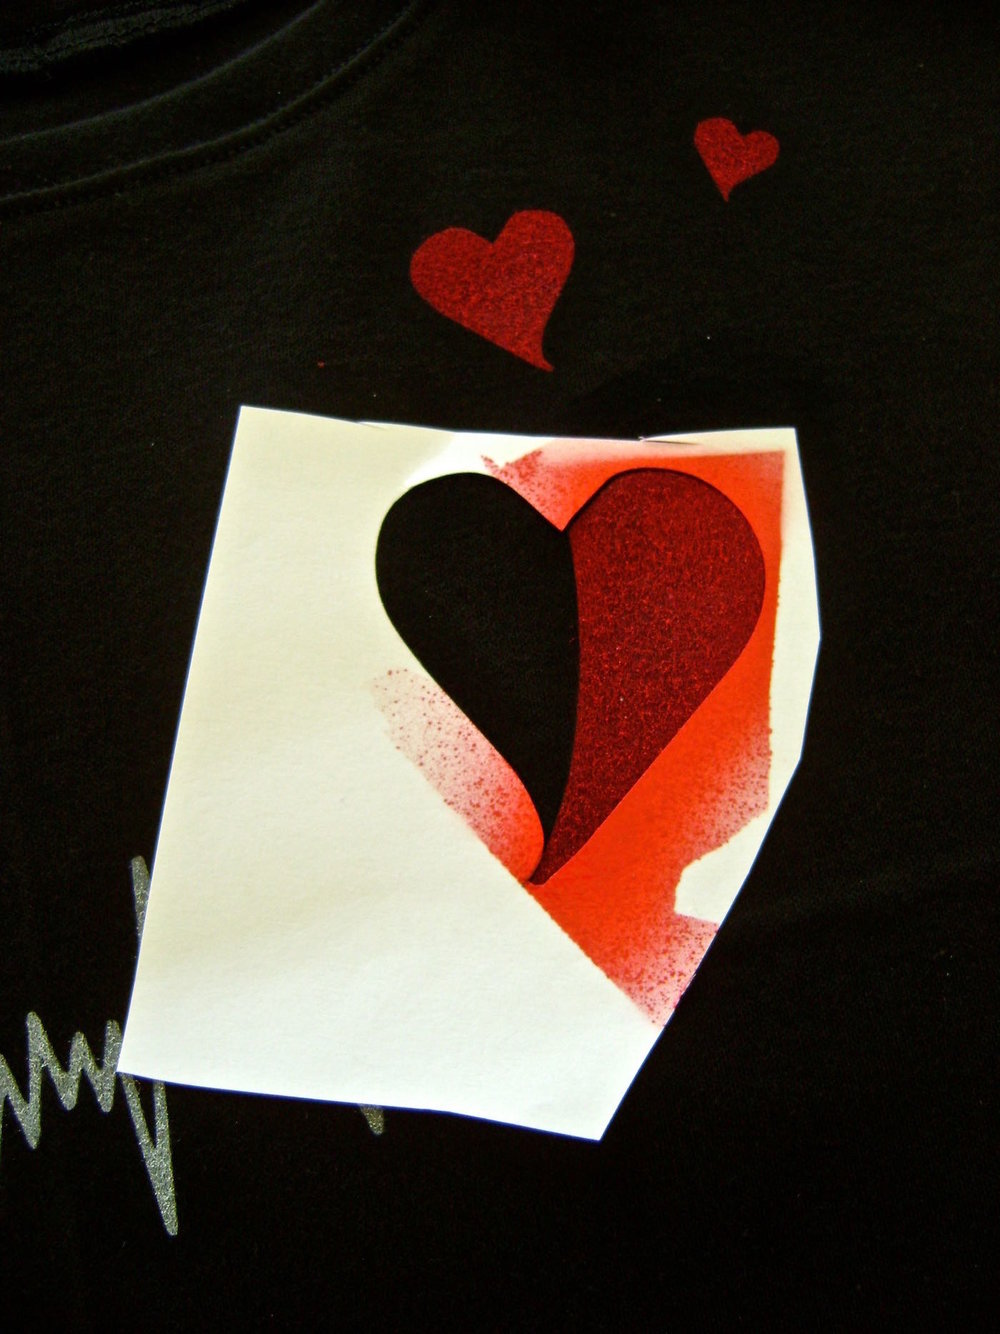 step 7 - Cut out the left side of the large heart on the outer grey line.  Place it back on the shirt in position and align red rhinestones along the border.  Carefully remove the stencil and attach the rhinestones with an iron or rhinestone applicator.